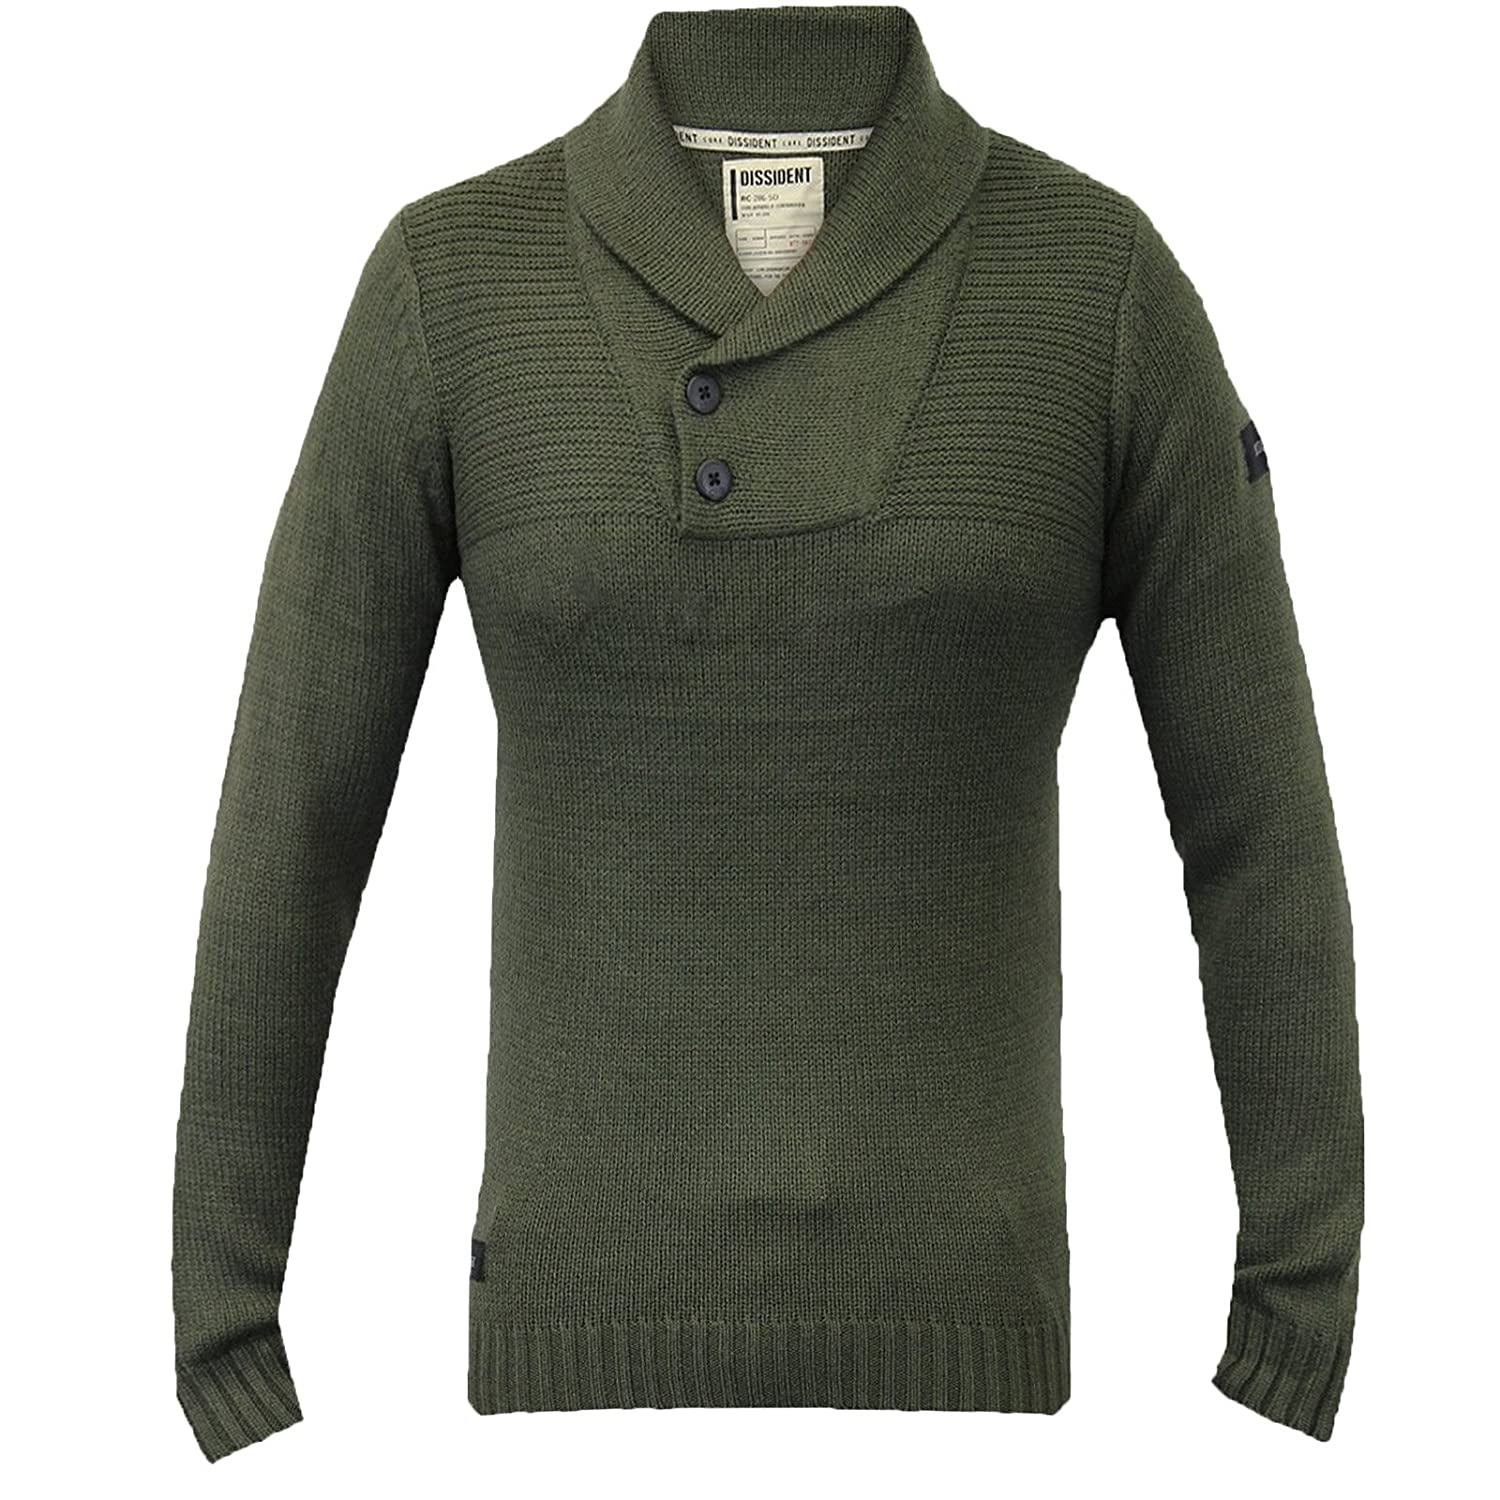 dd642f40bf7 Pull homme dissidant NEUF Top tricoté pull d  Hiver Col Châle pull chaud   Amazon.fr  Vêtements et accessoires